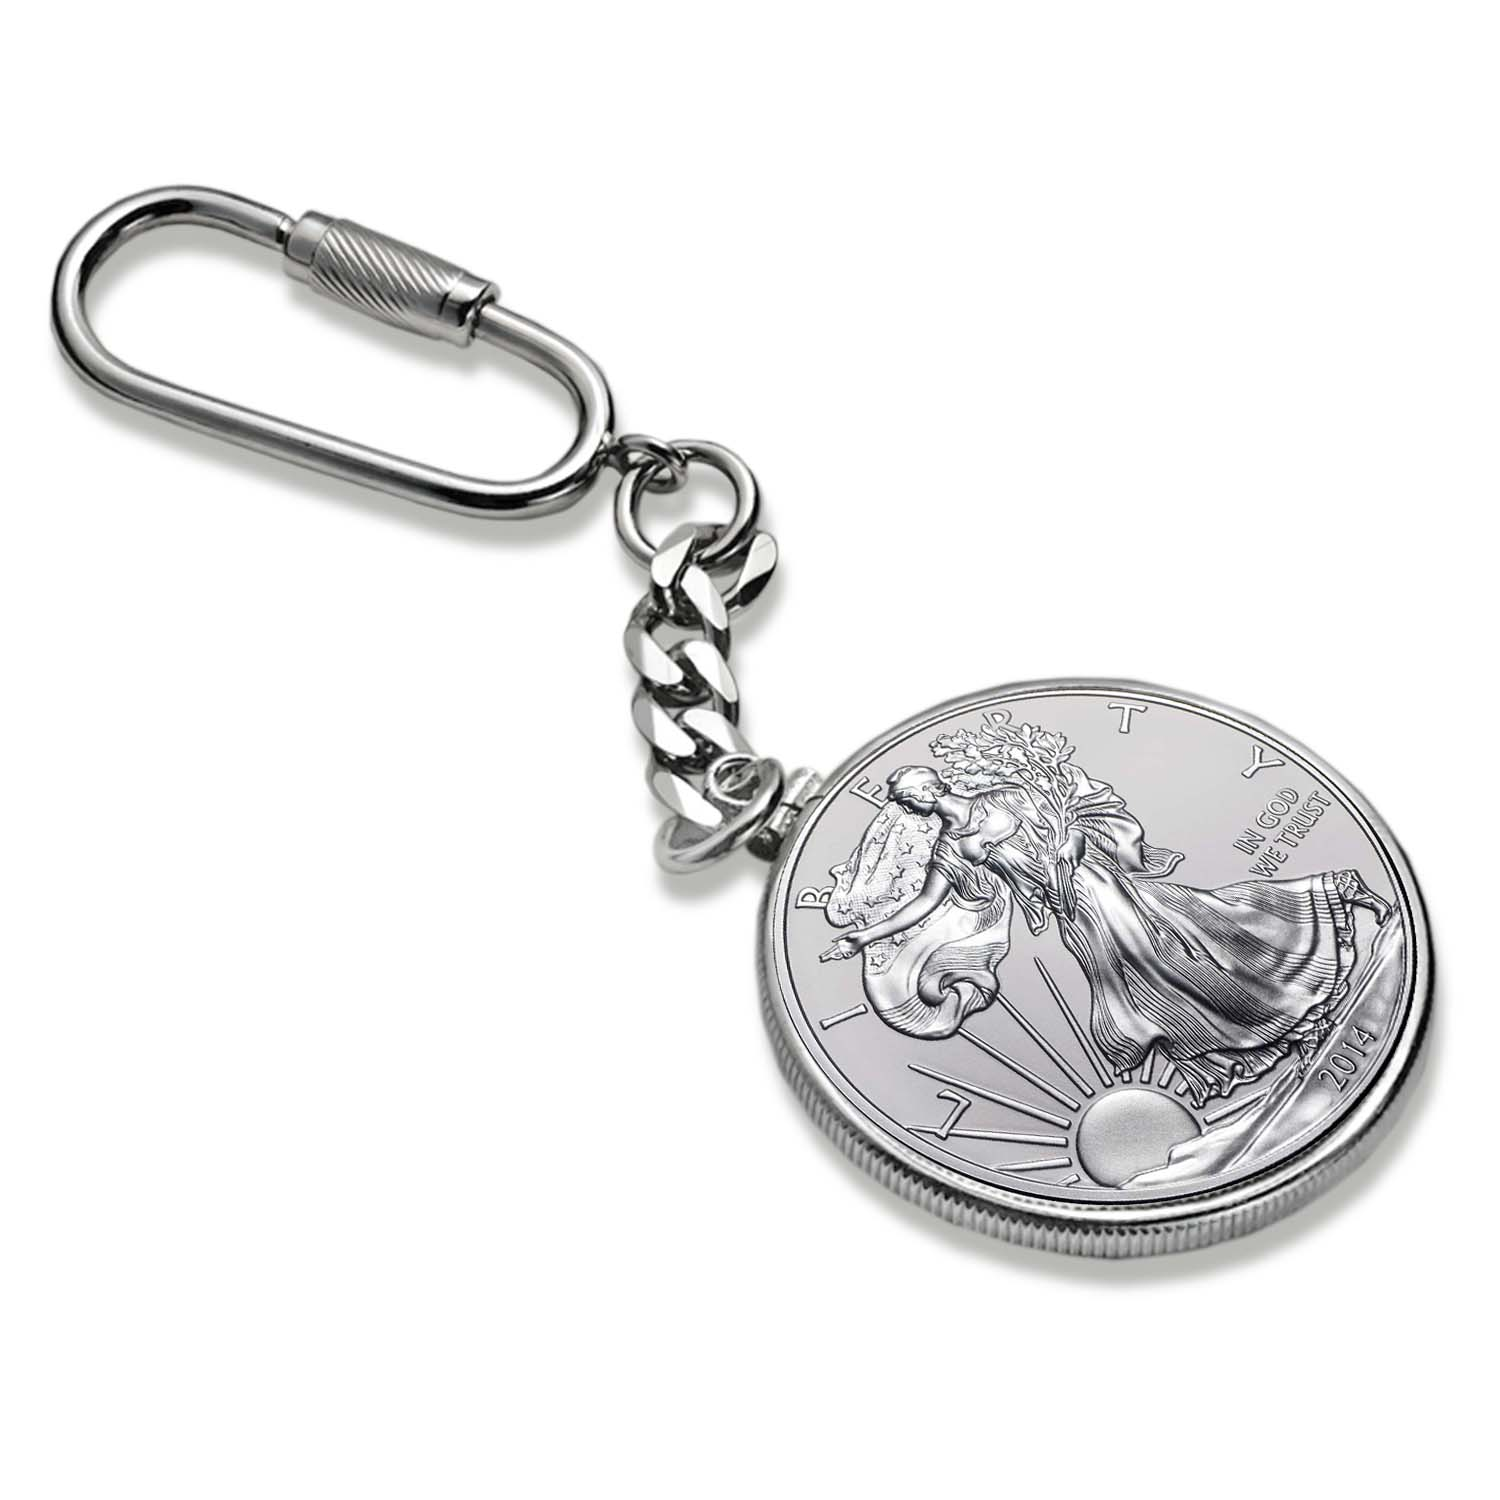 2014 1 oz Silver American Eagle Key Ring